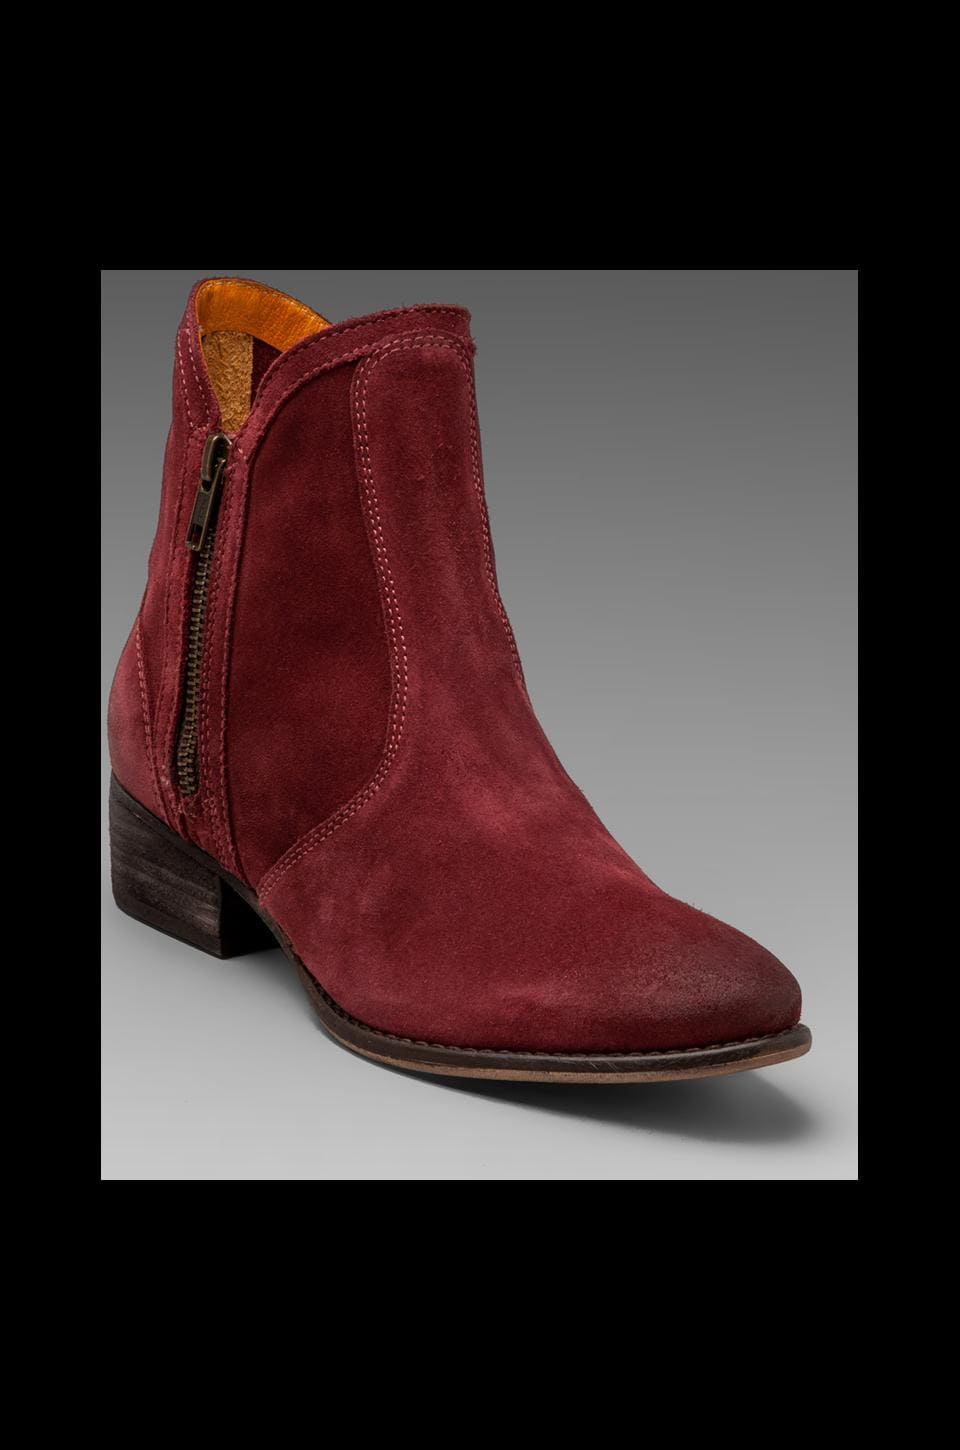 Seychelles Lucky Penny Bootie in Burgundy Suede